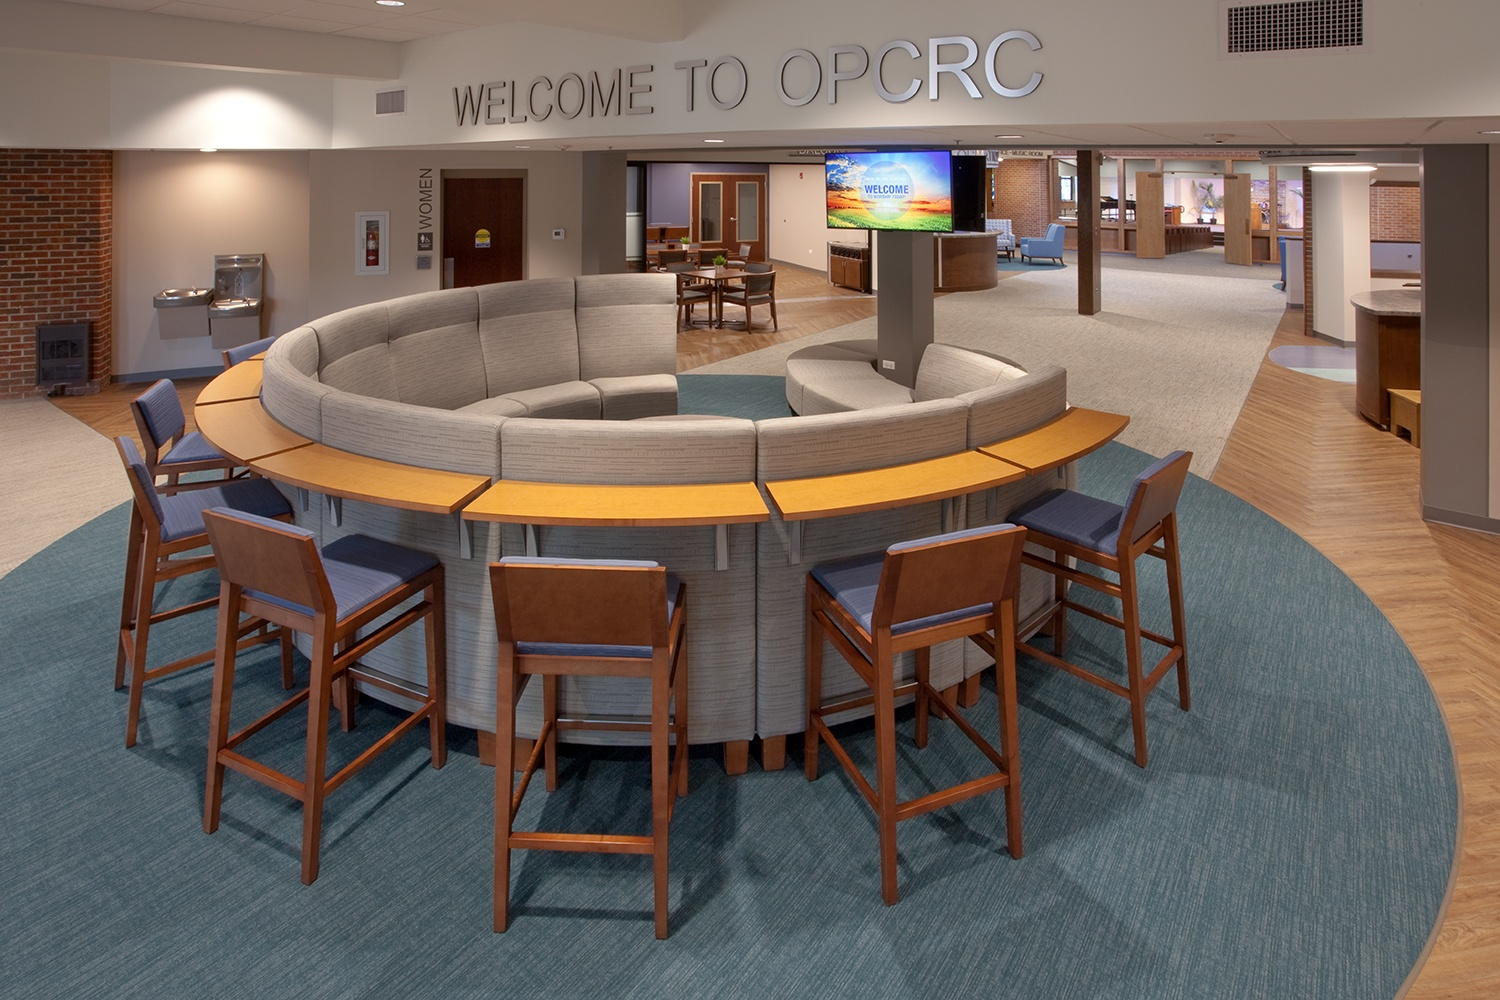 orland-park-welcome-web.jpg